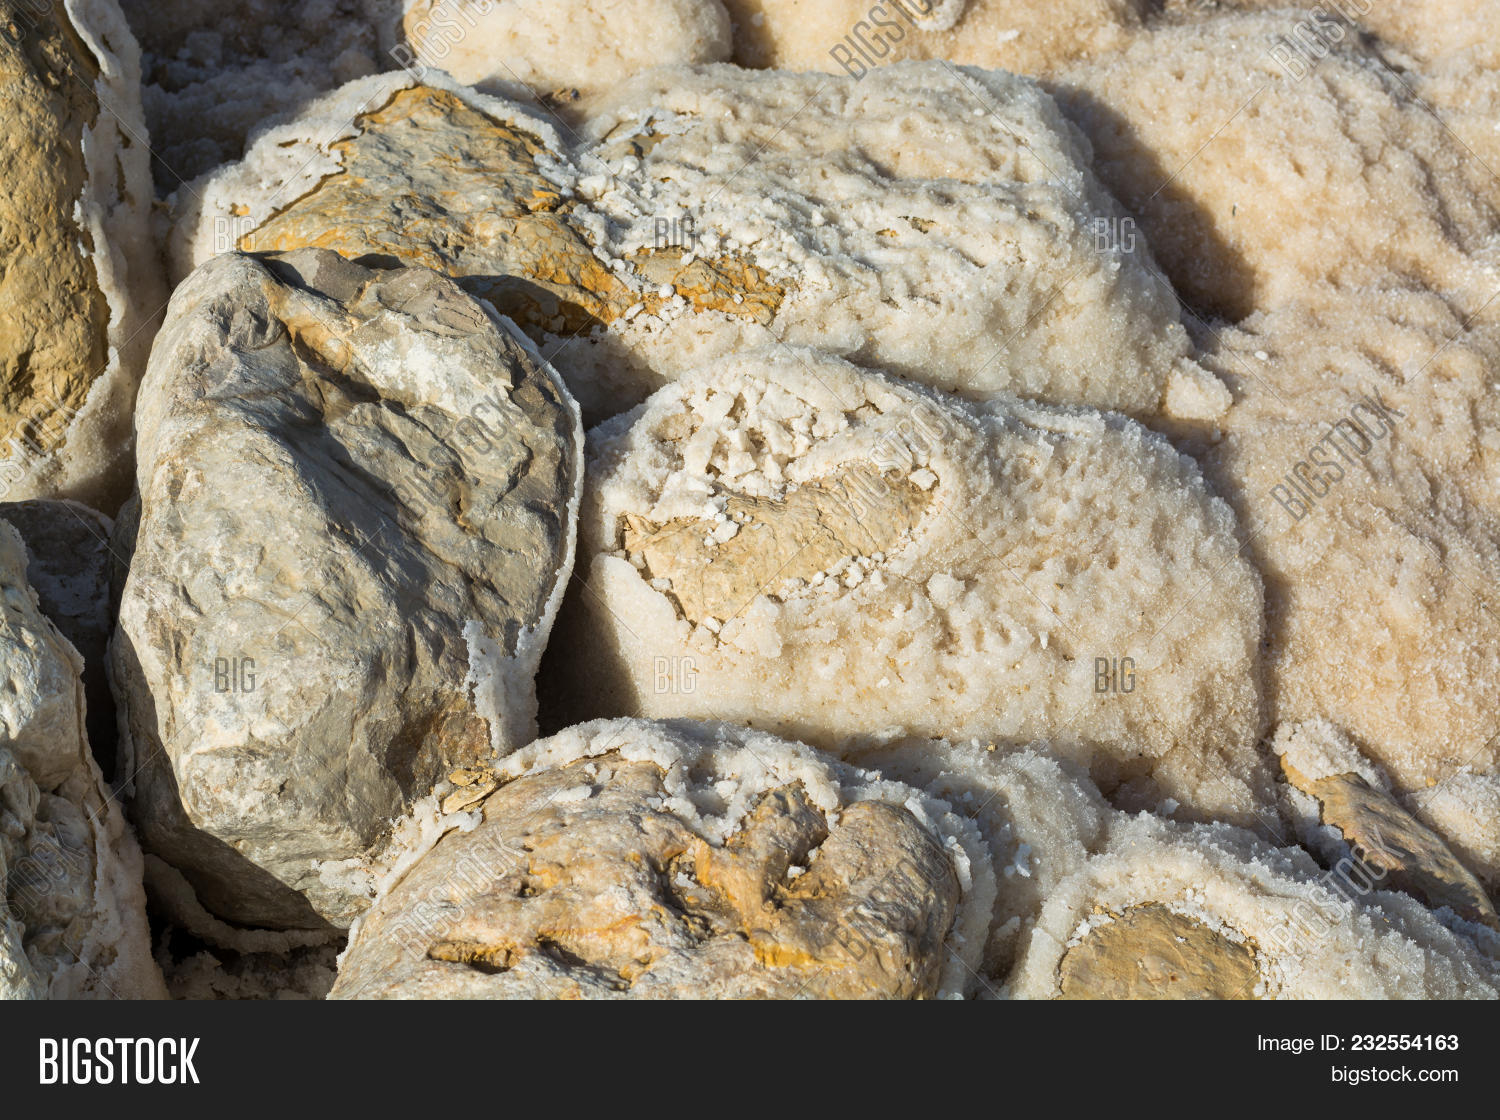 Salt Dead Sea, Israel Image & Photo (Free Trial) | Bigstock